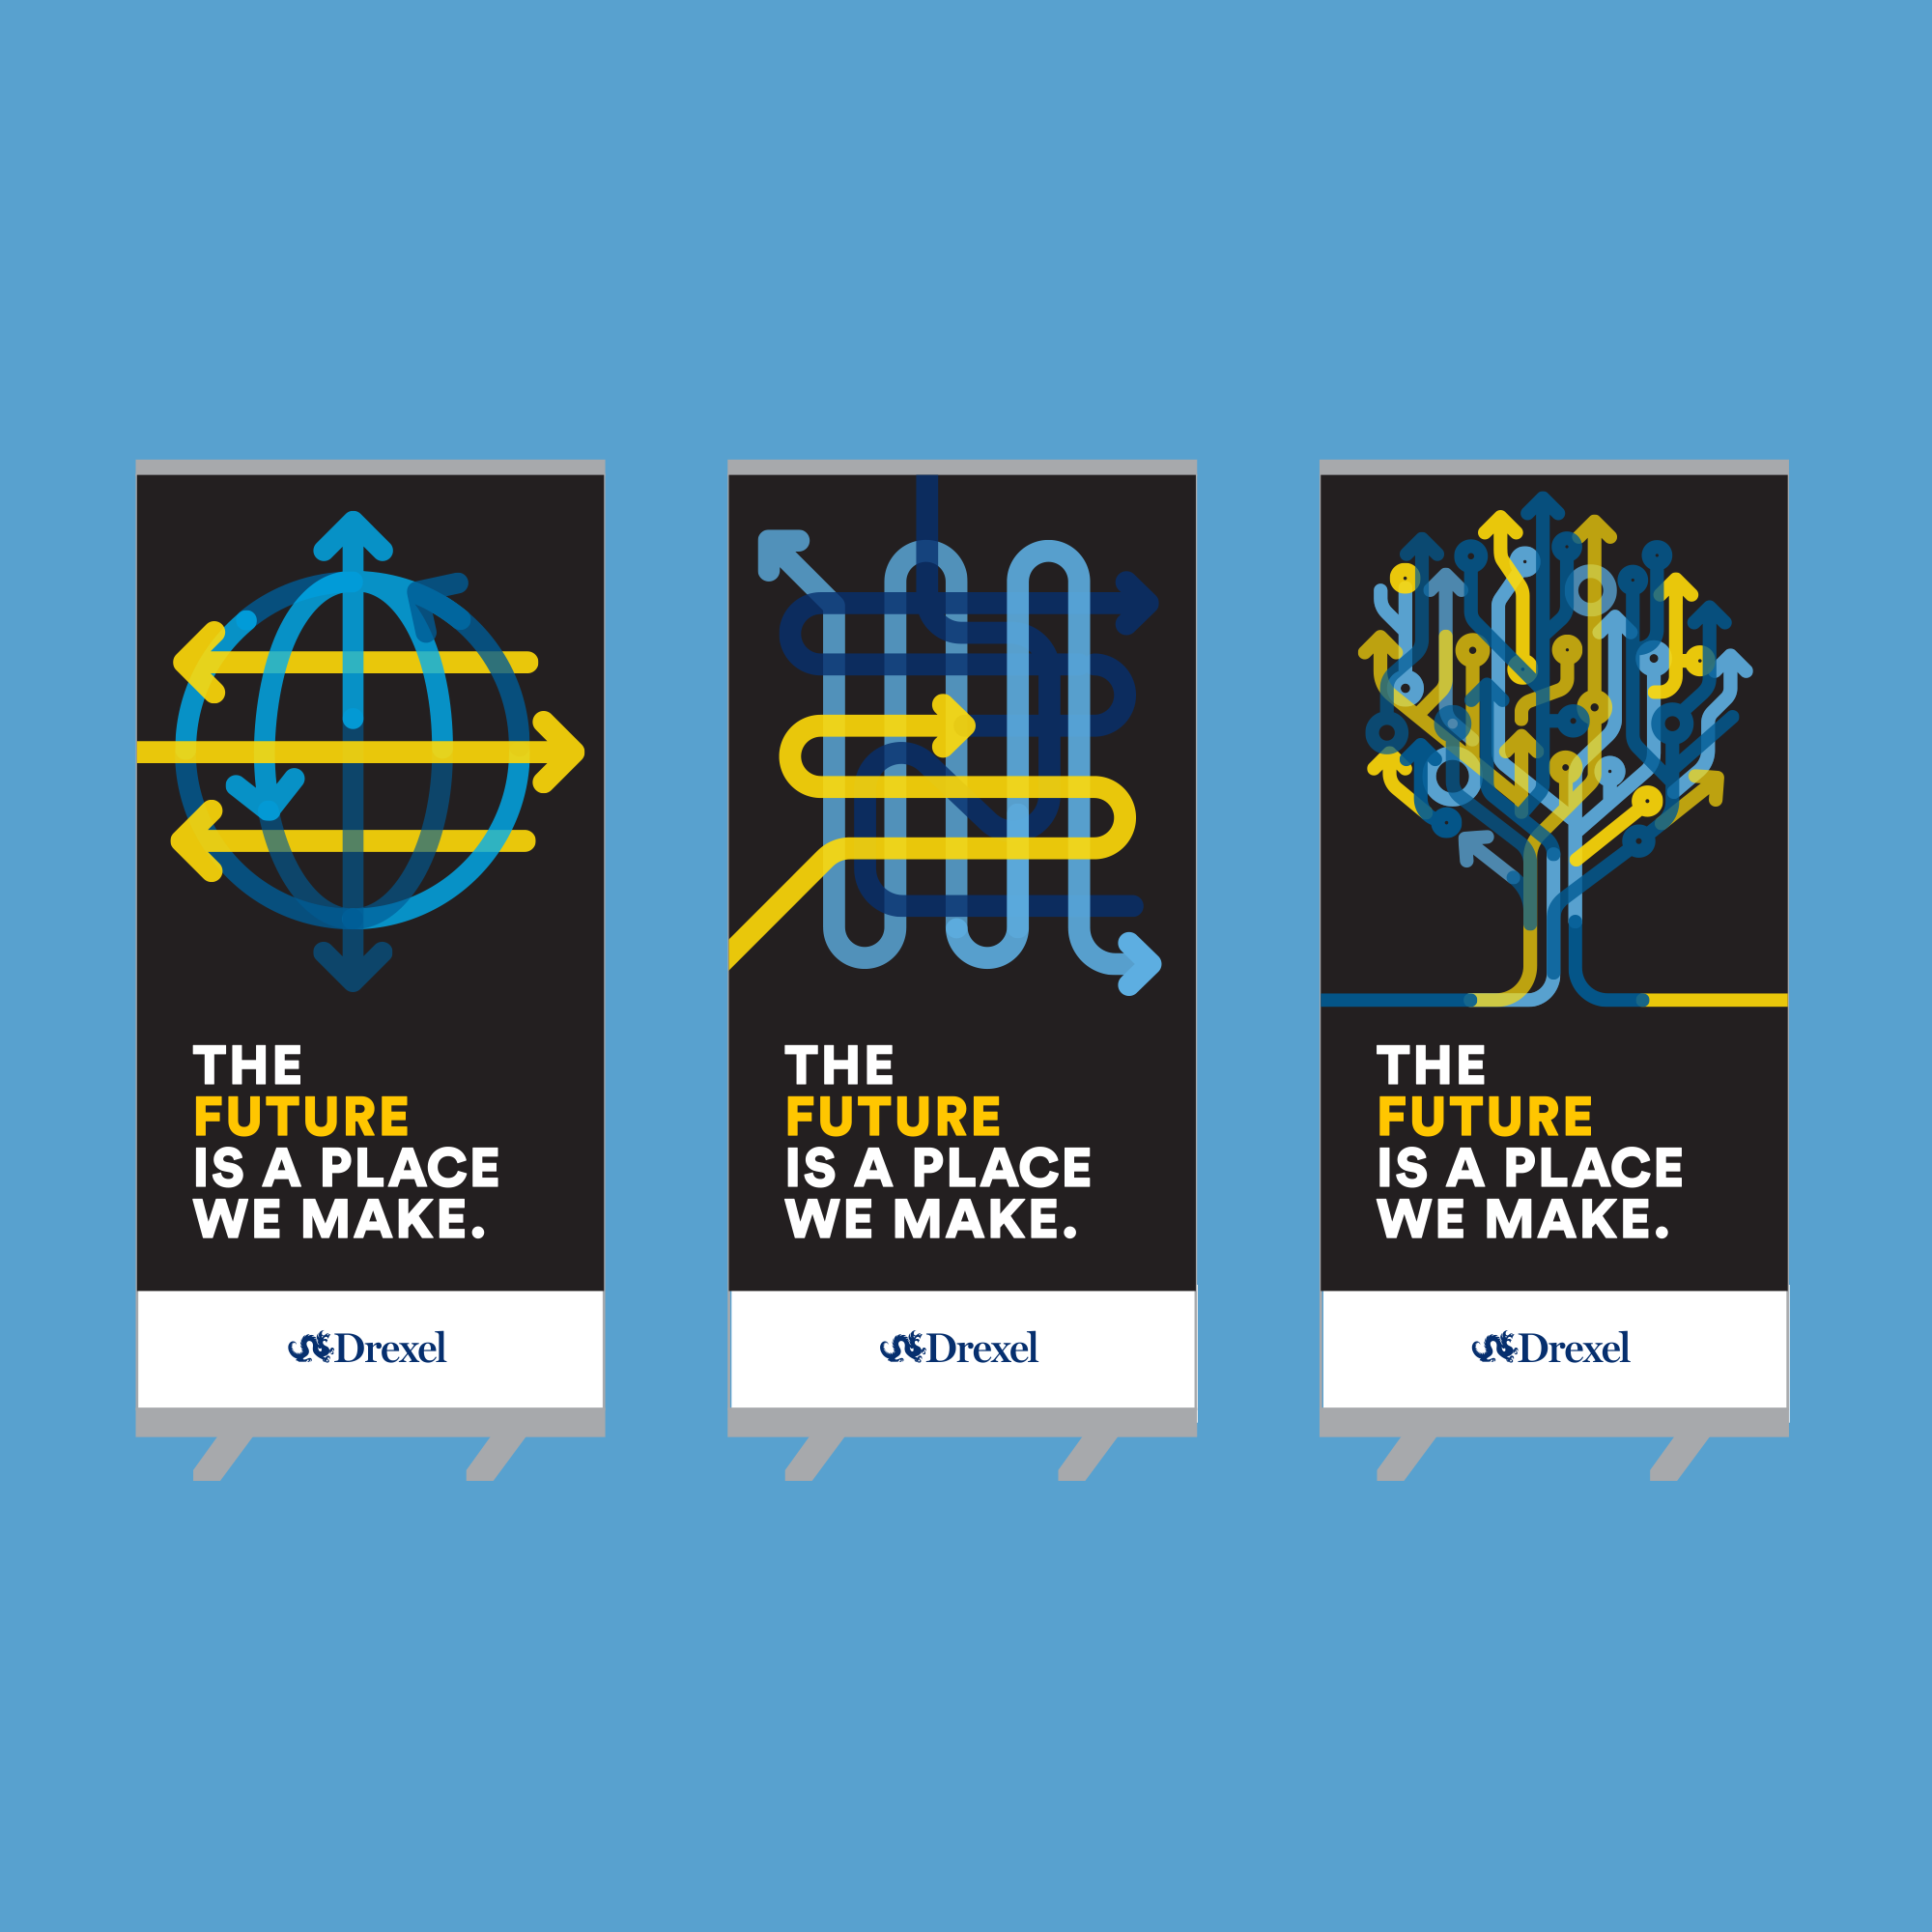 New brand campaign for Drexel University, pop up banners